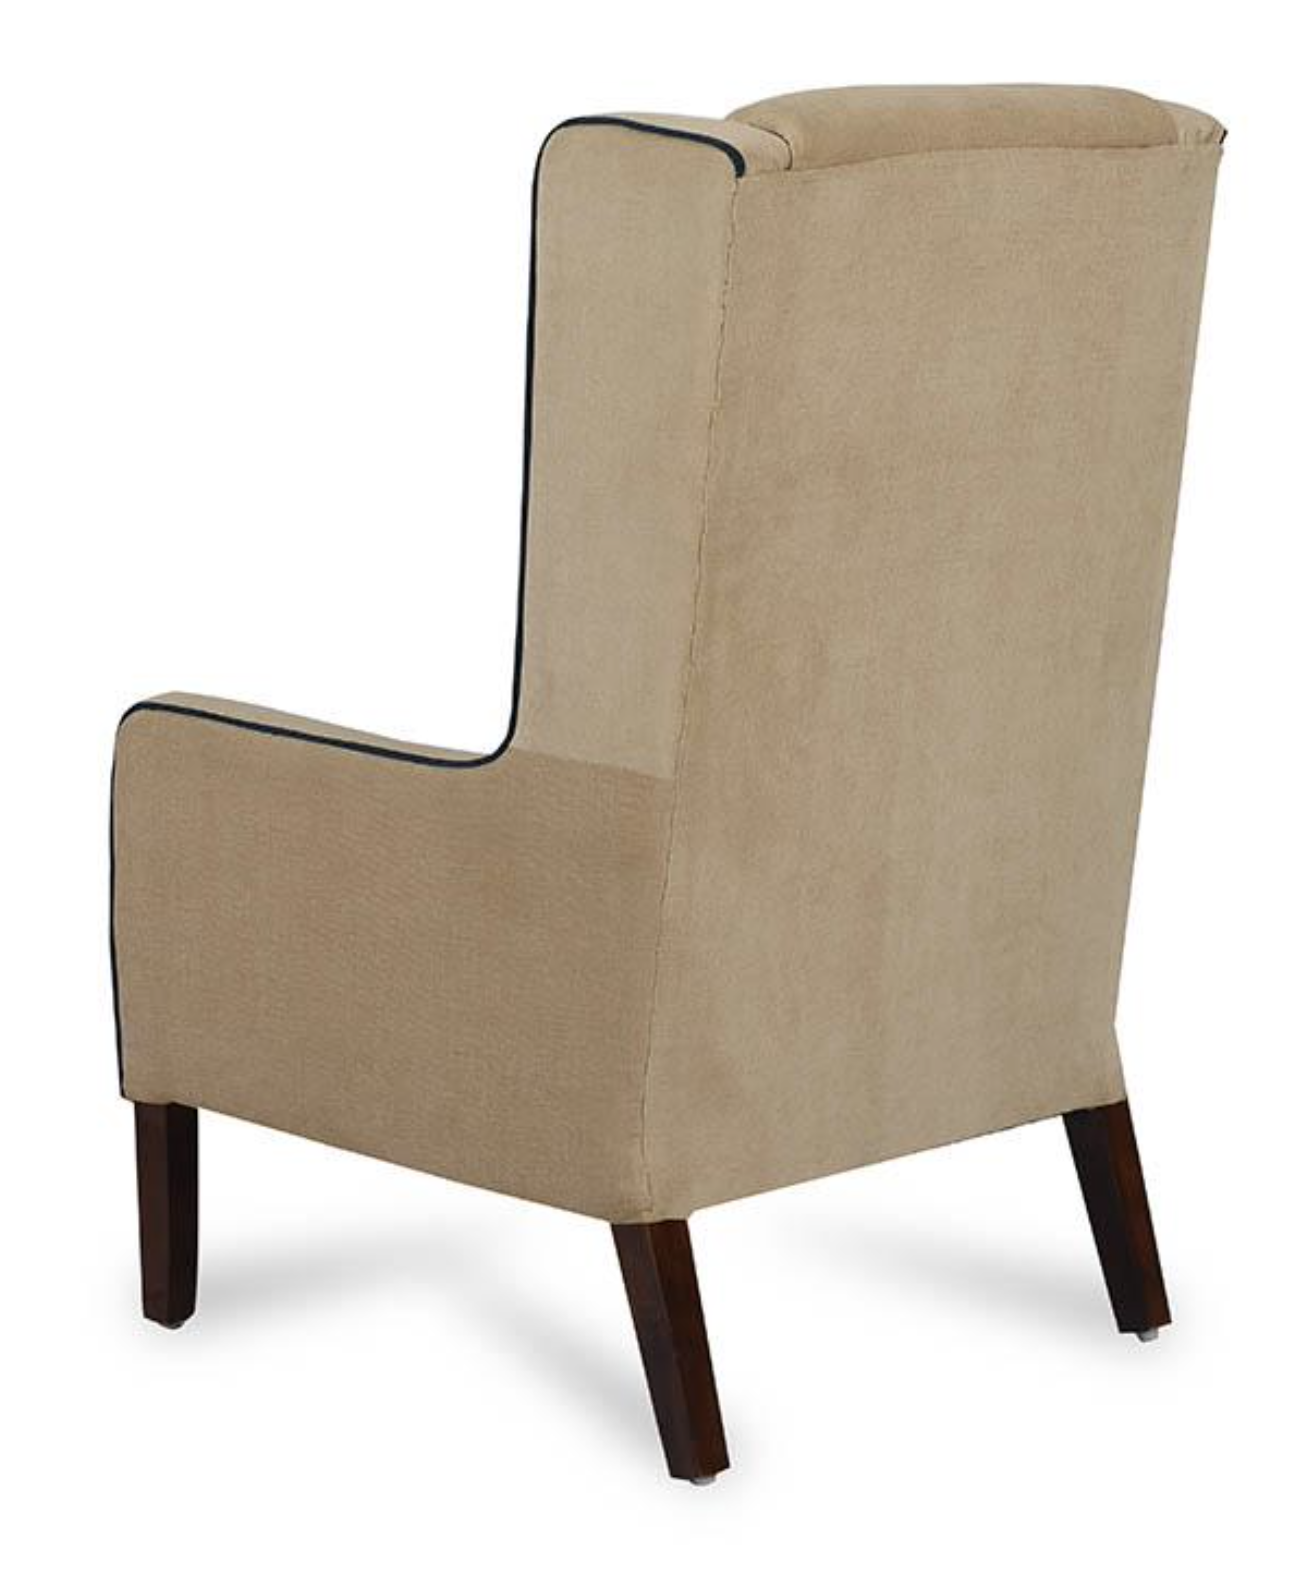 Camel Colour Wing Chair.